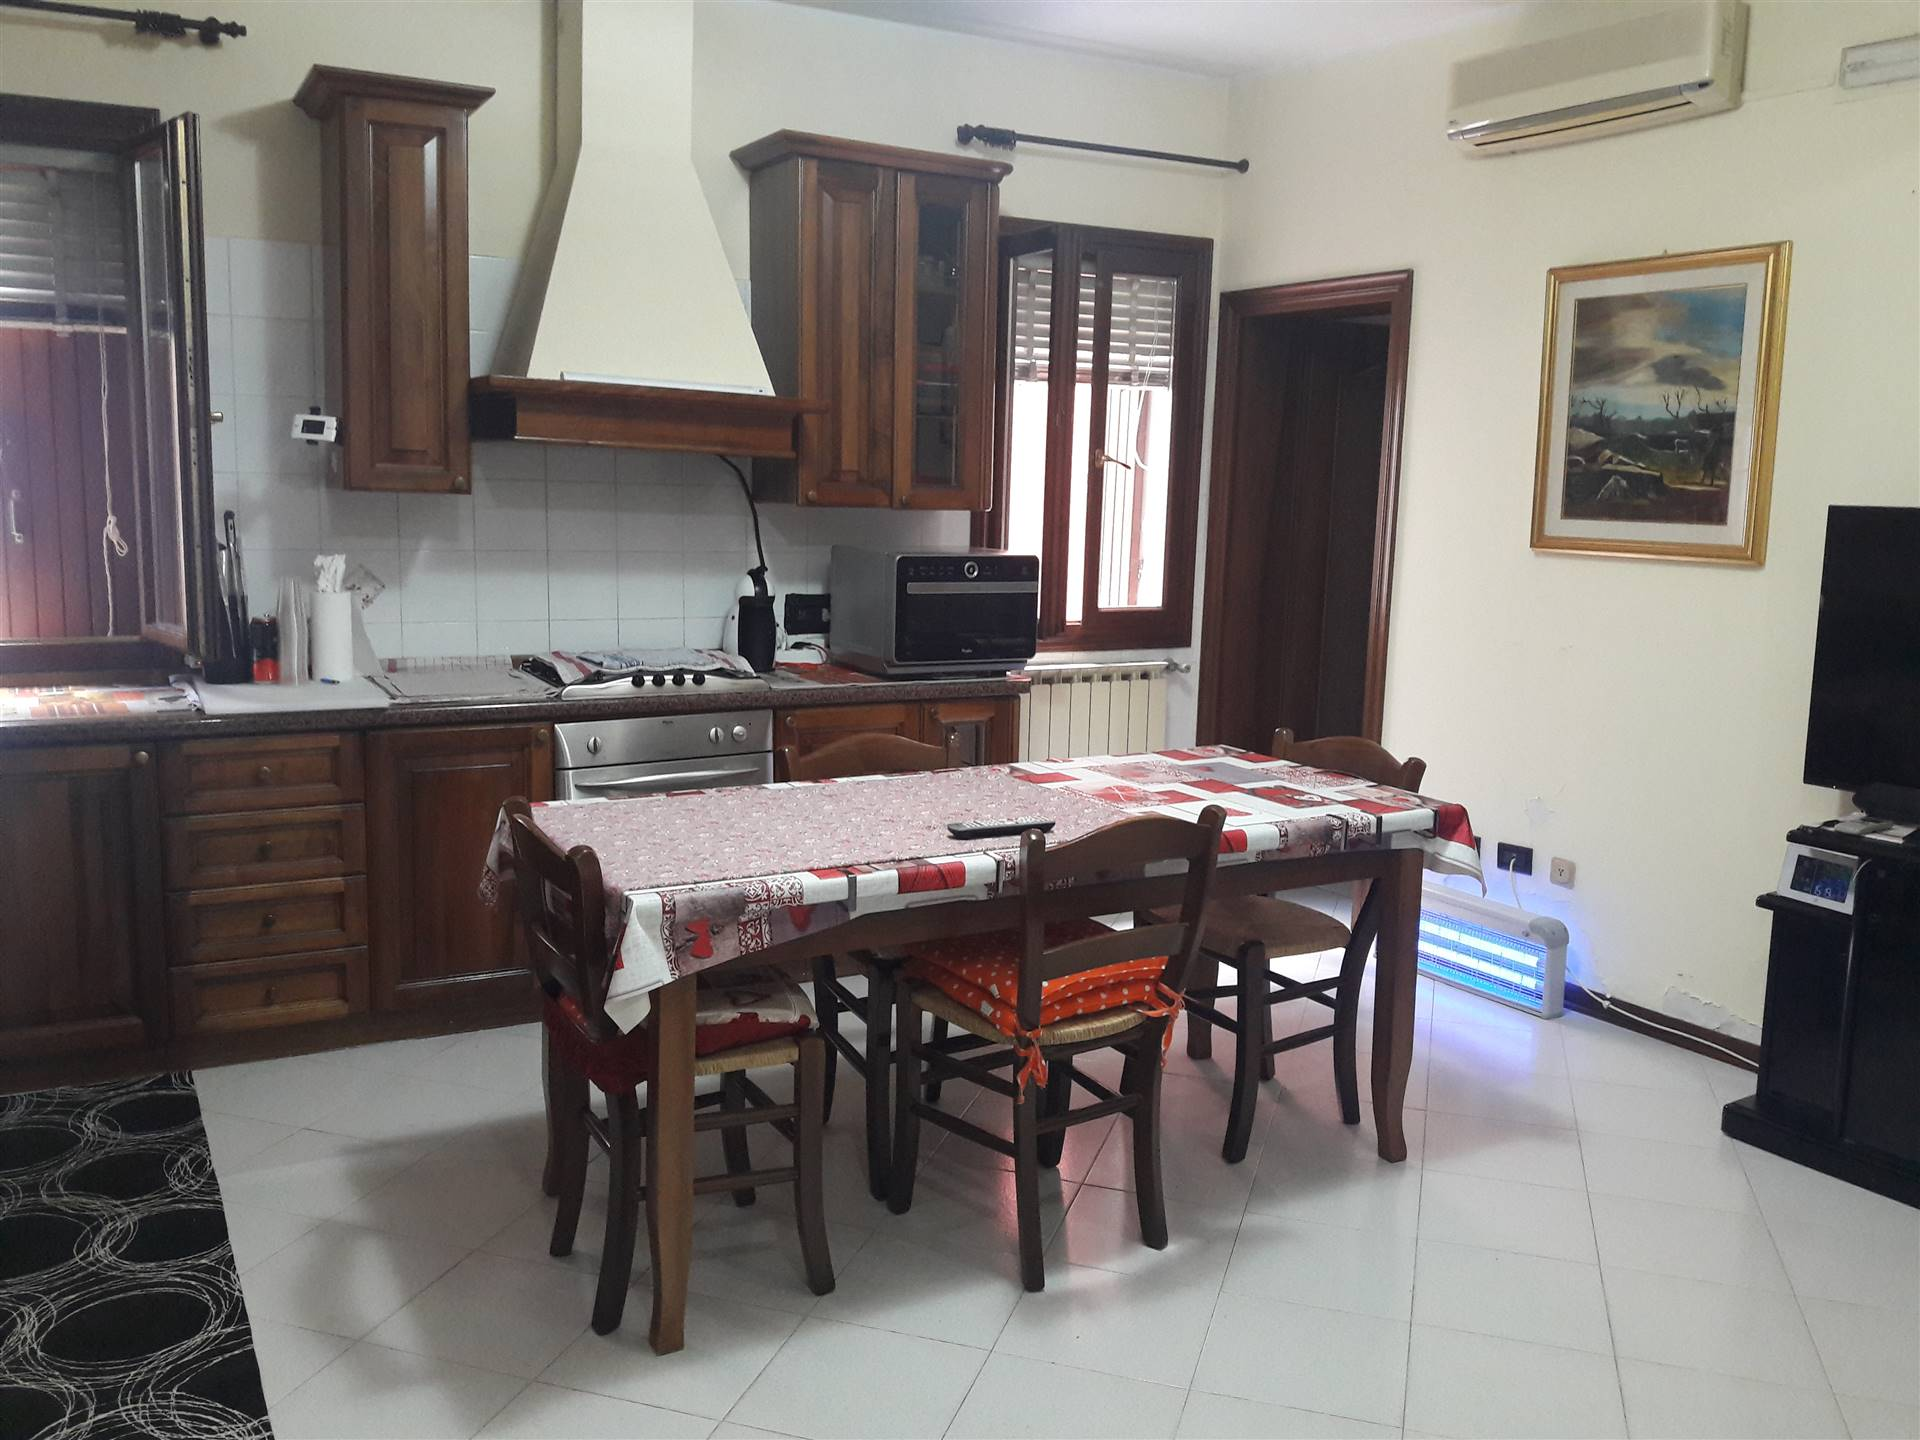 CHIOGGIA CENTRO, CHIOGGIA, Detached house for sale of 140 Sq. mt., Good condition, Heating Individual heating system, Energetic class: D, Epi: 75,